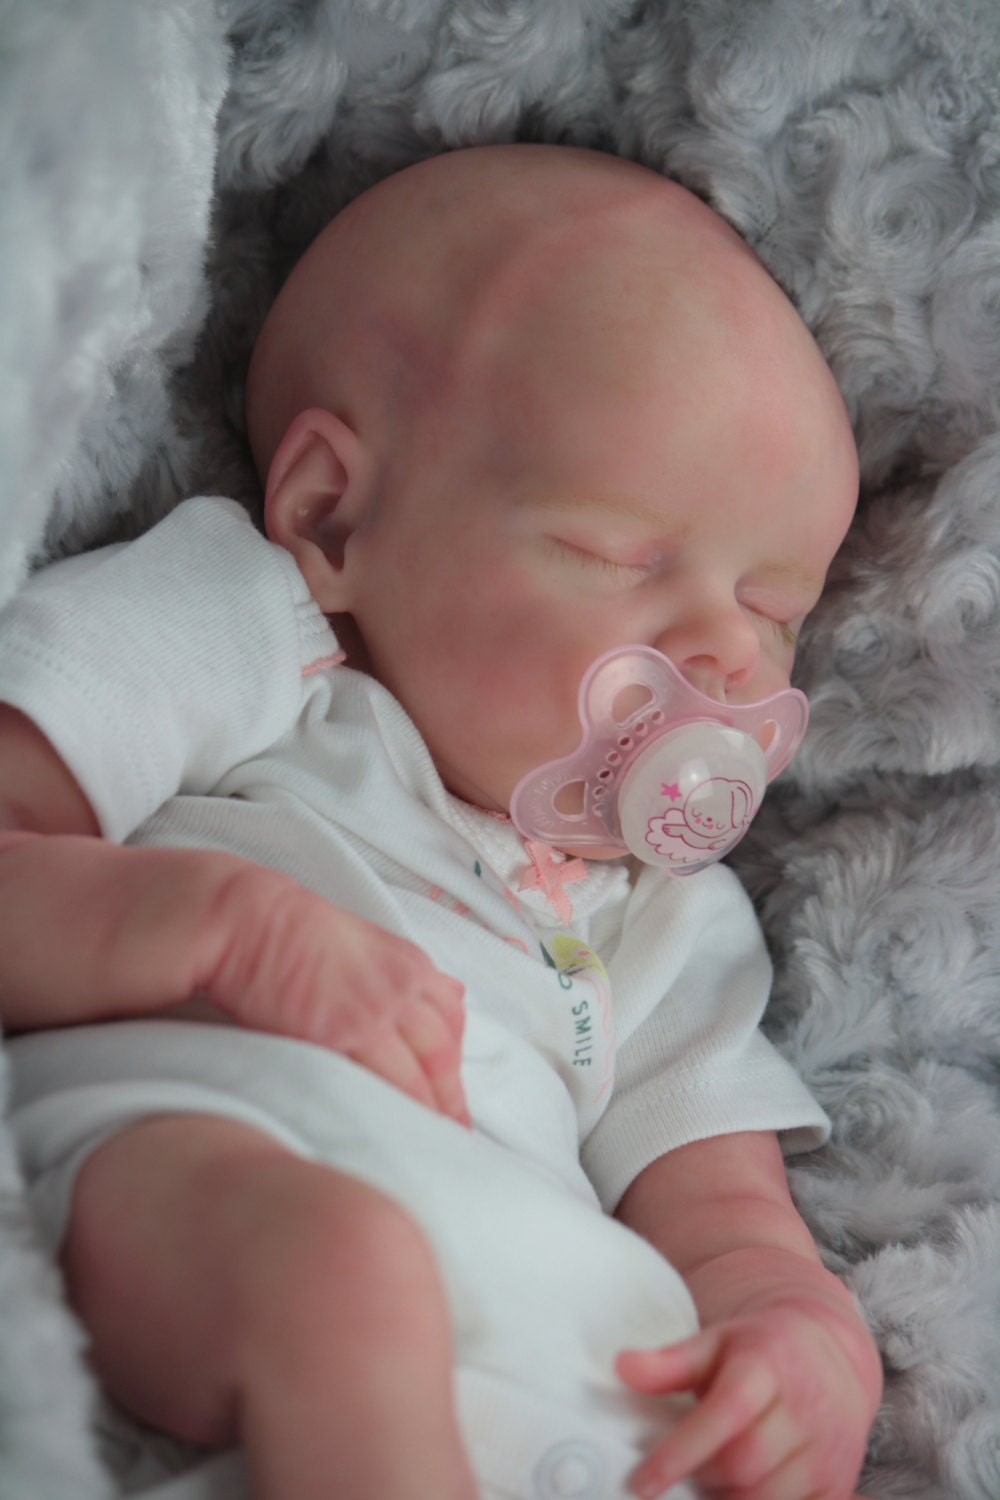 Twin B By Bonnie Brown Reborn Baby Doll With Certificate Of